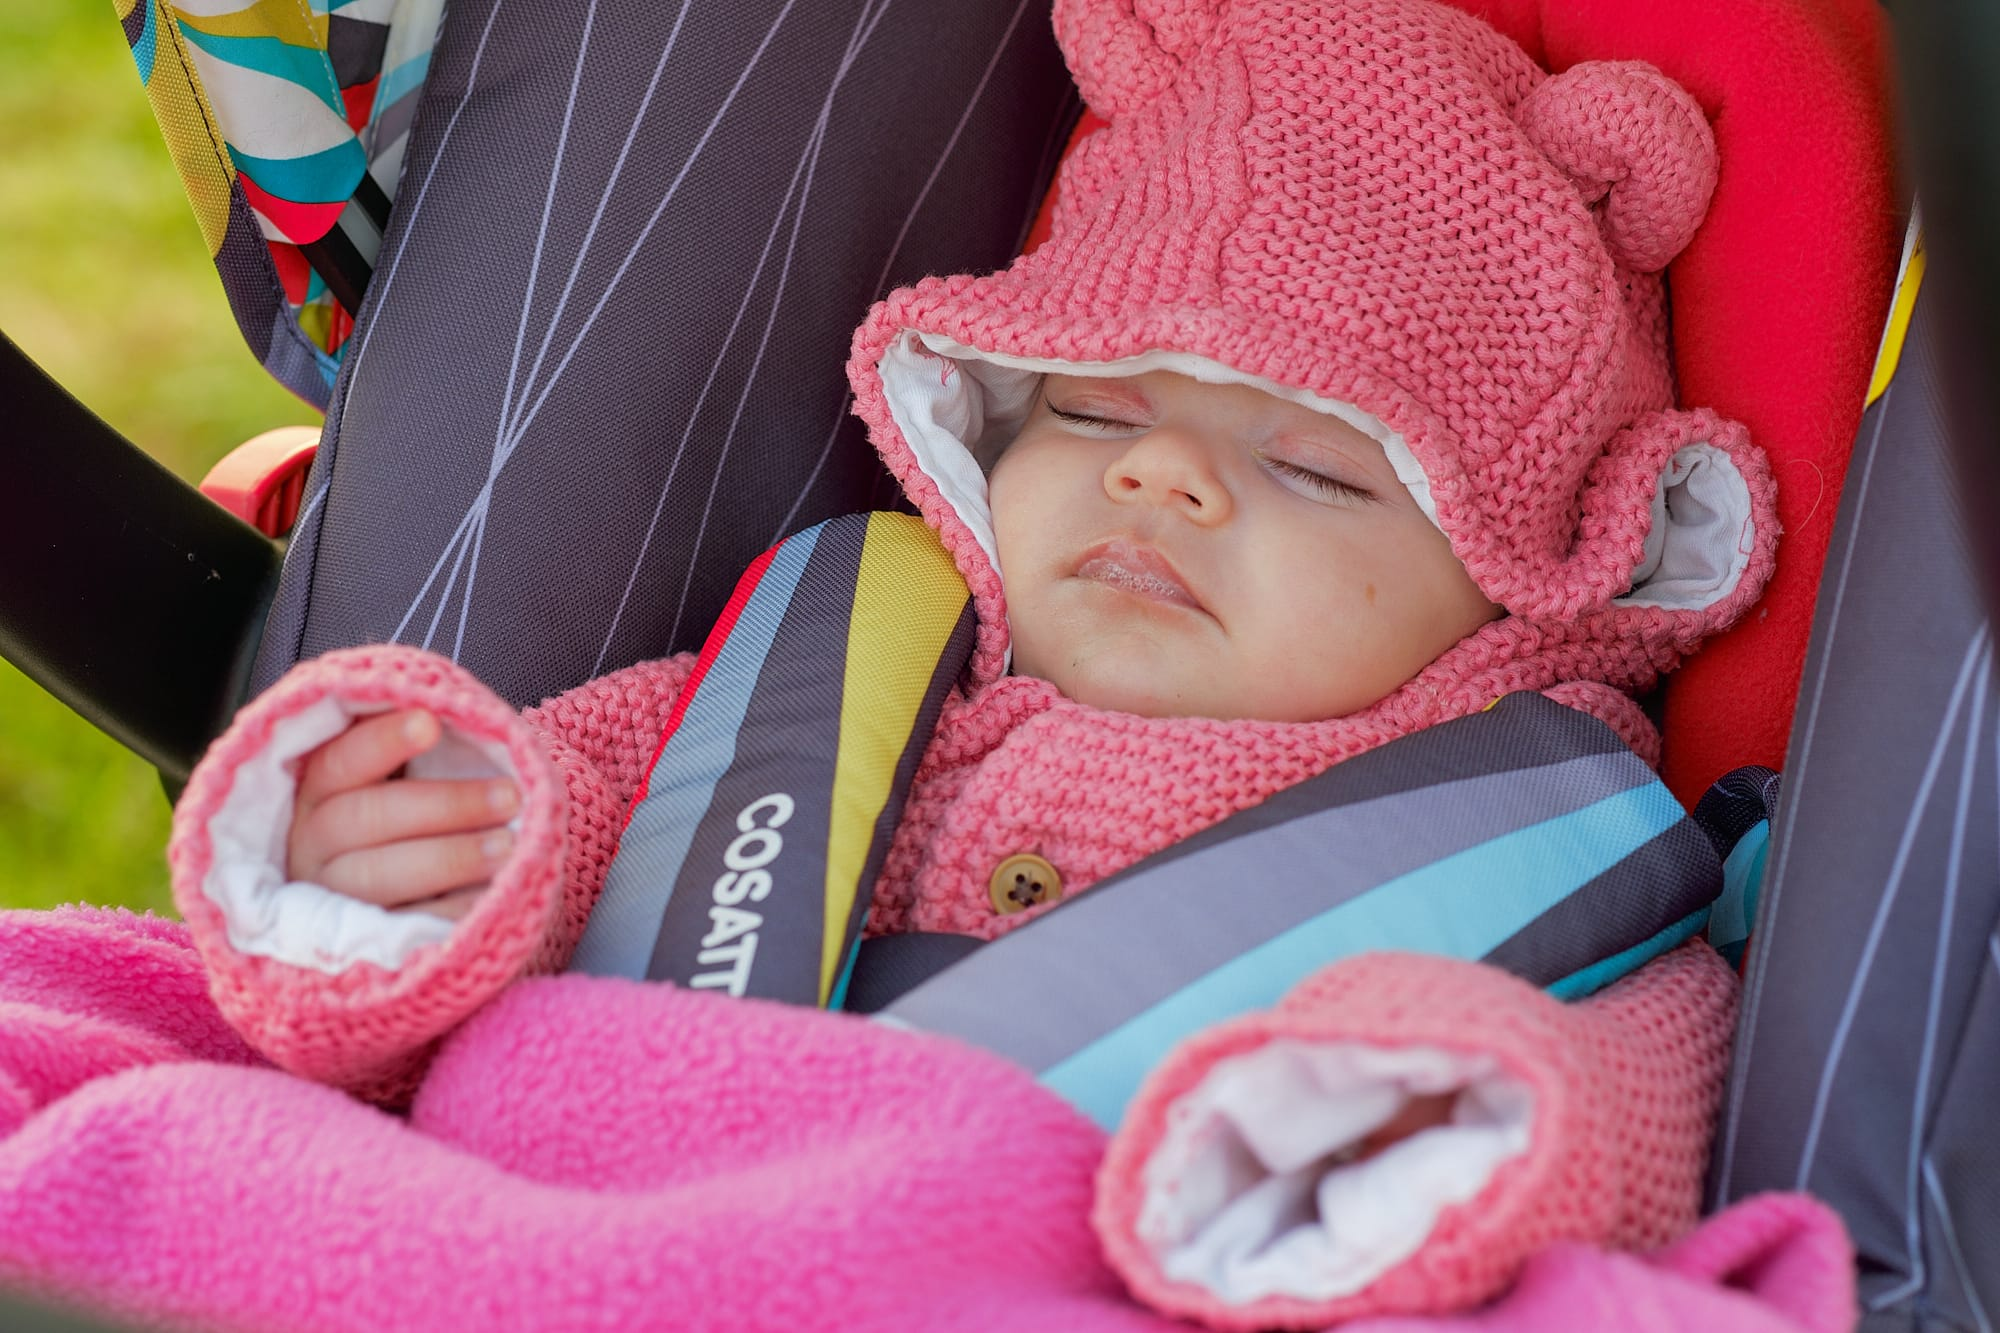 Emily sleeping in her pram